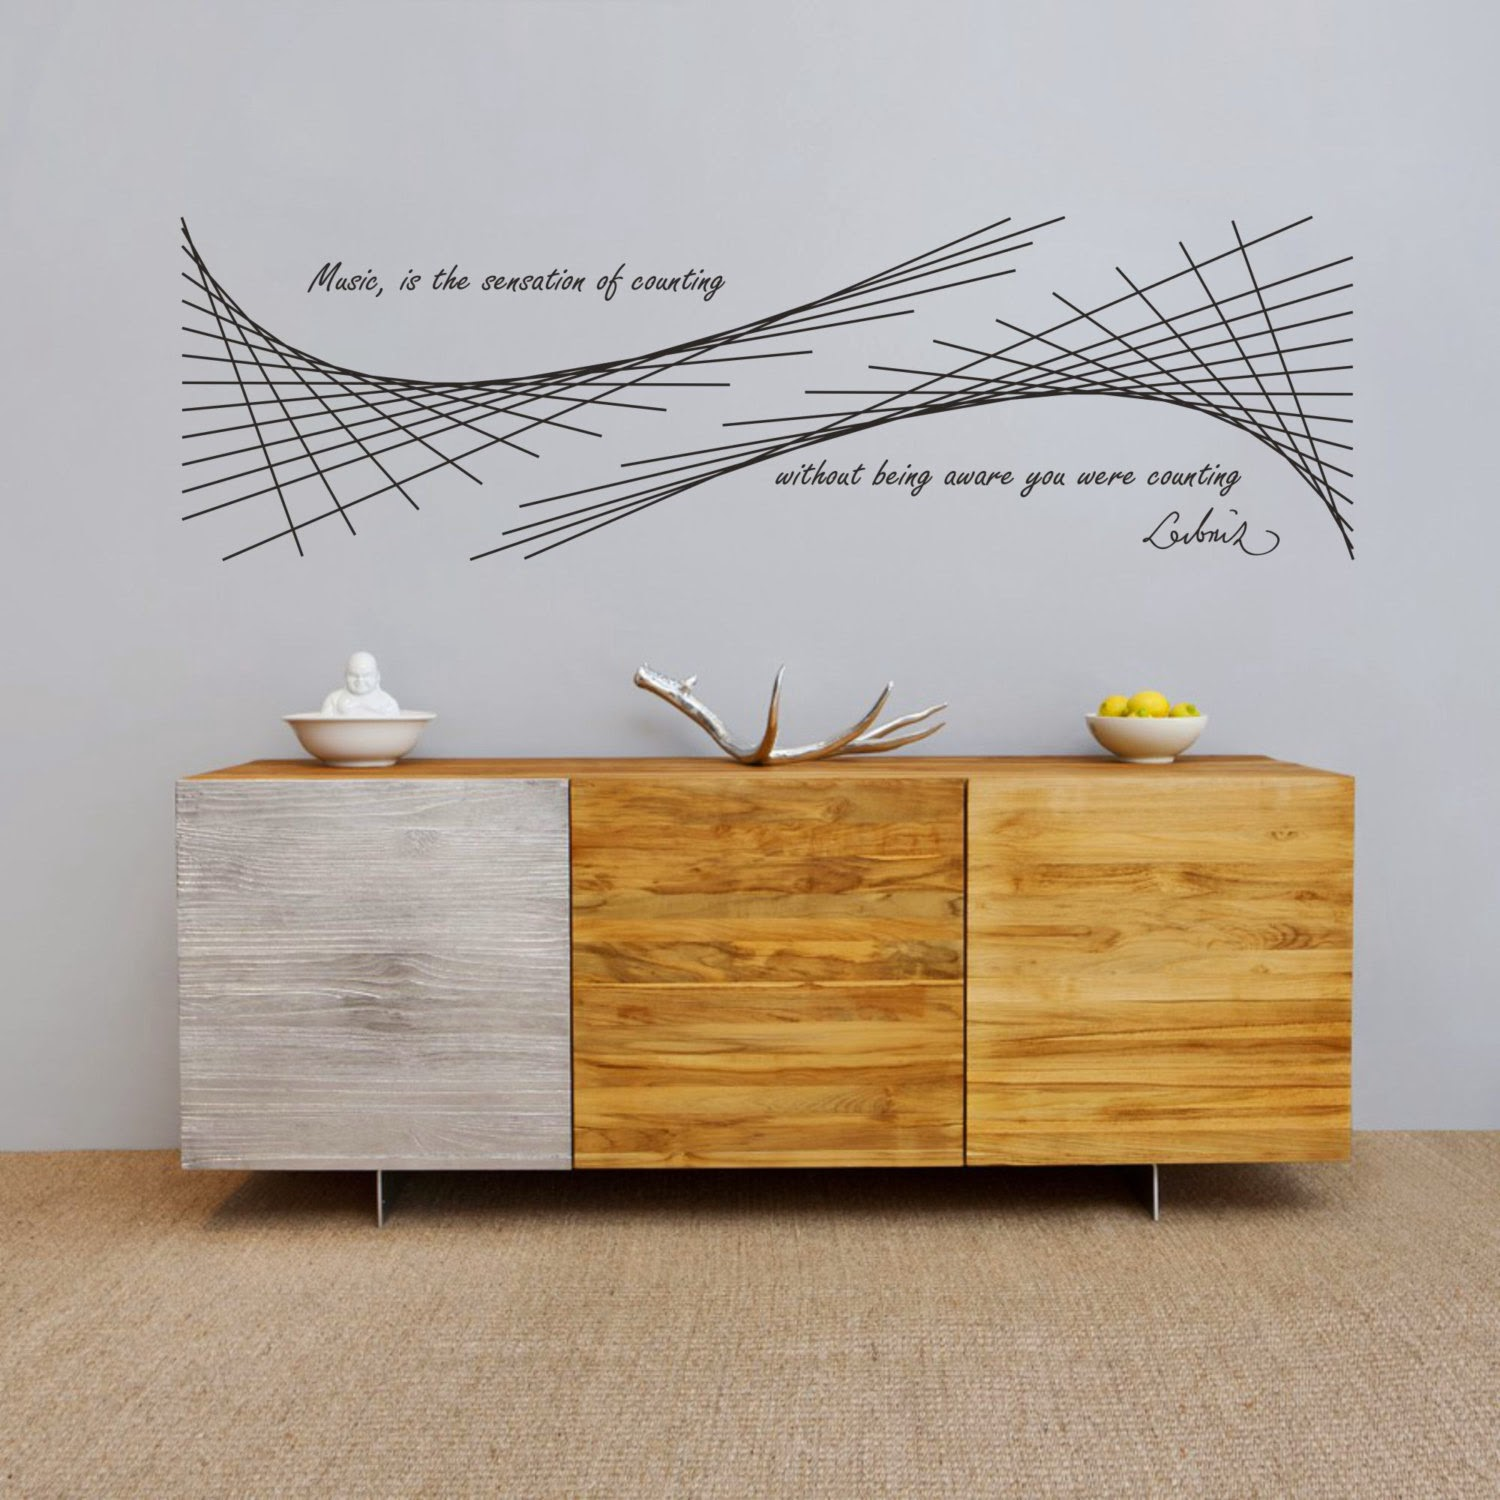 In this science wall decal leibnizs famous quote music is the sensation of counting without being aware you were counting accompanies a geometric art